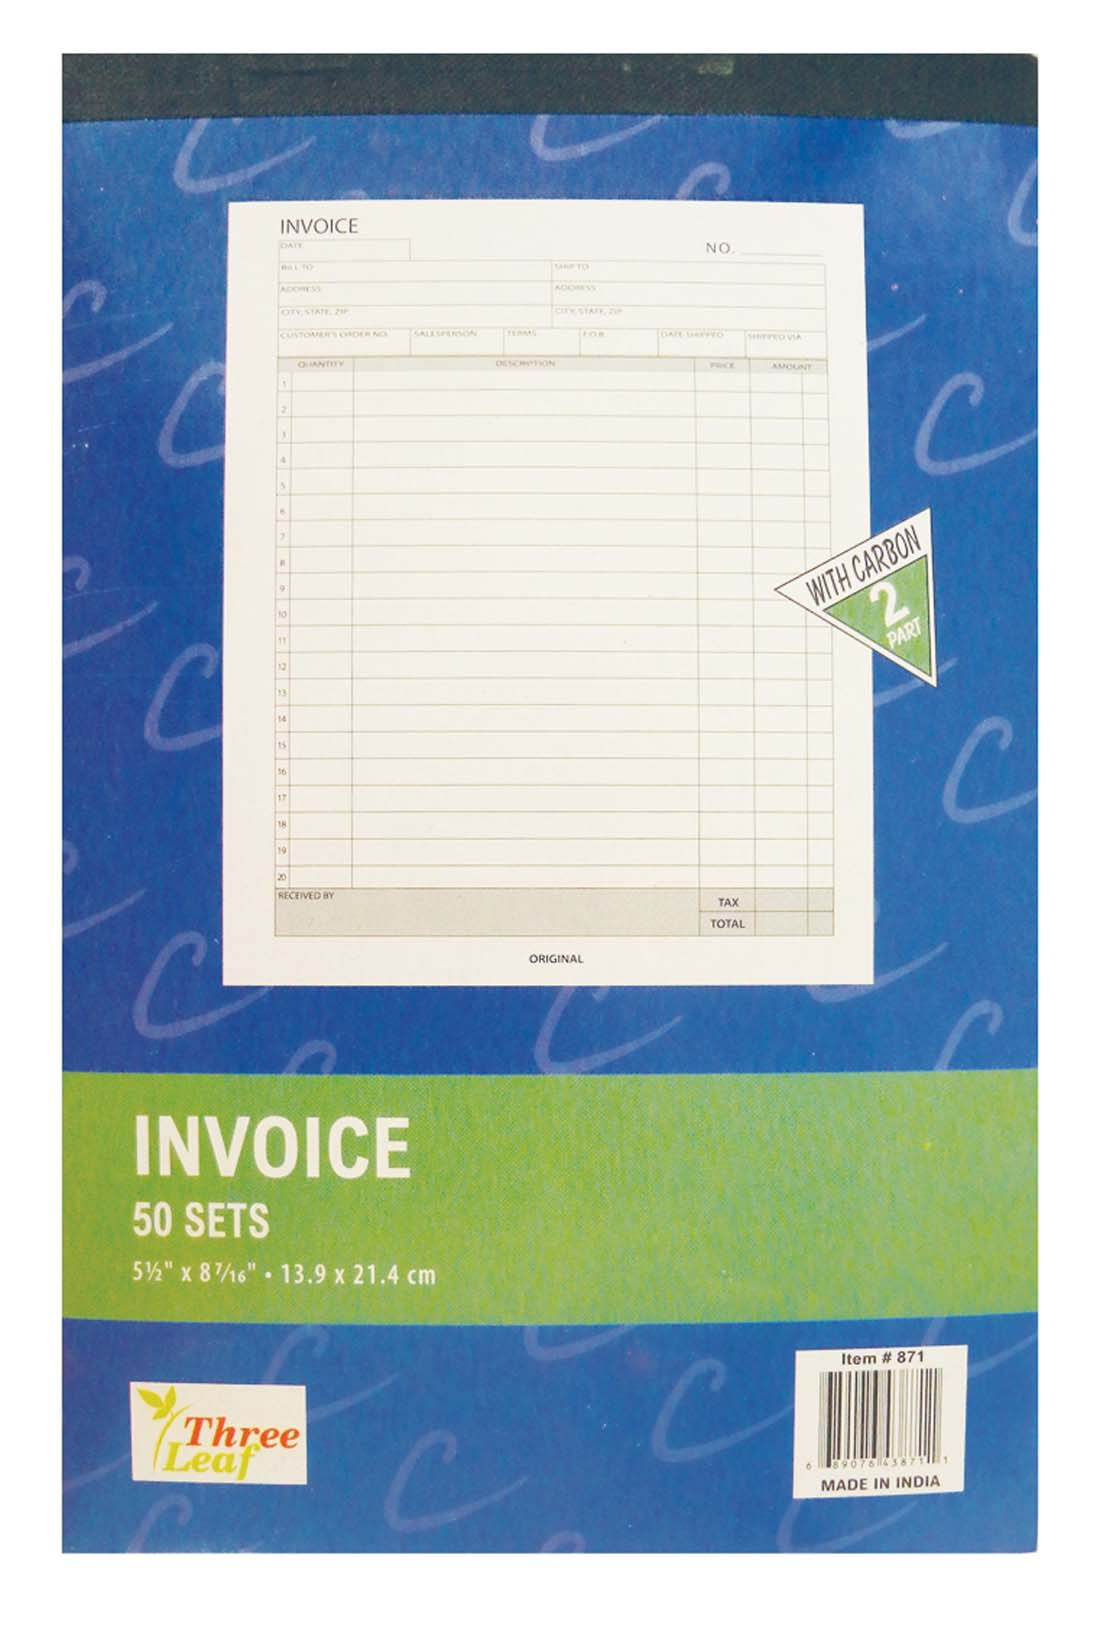 View INVOICE BOOK 50 SETS 5.5 X 8.5 INCH 2 PART WITH CARBON SHEETS